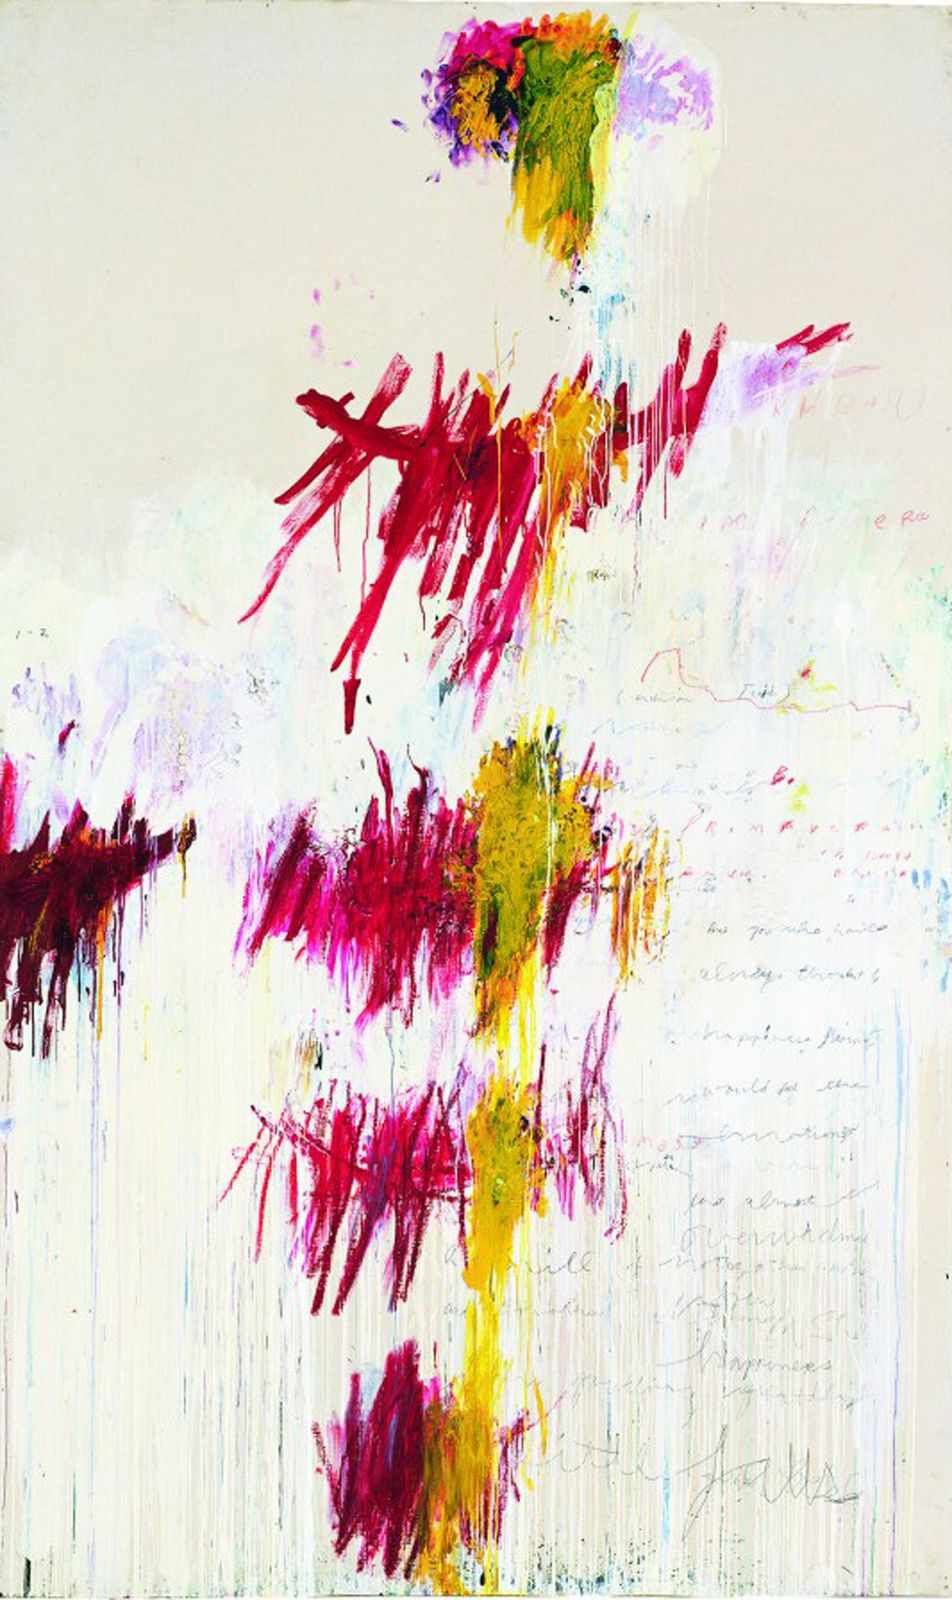 """Quattro Stagioni Primavera"", 1993-1995 de Cy TWOMBLY - Courtesy Tate, London"